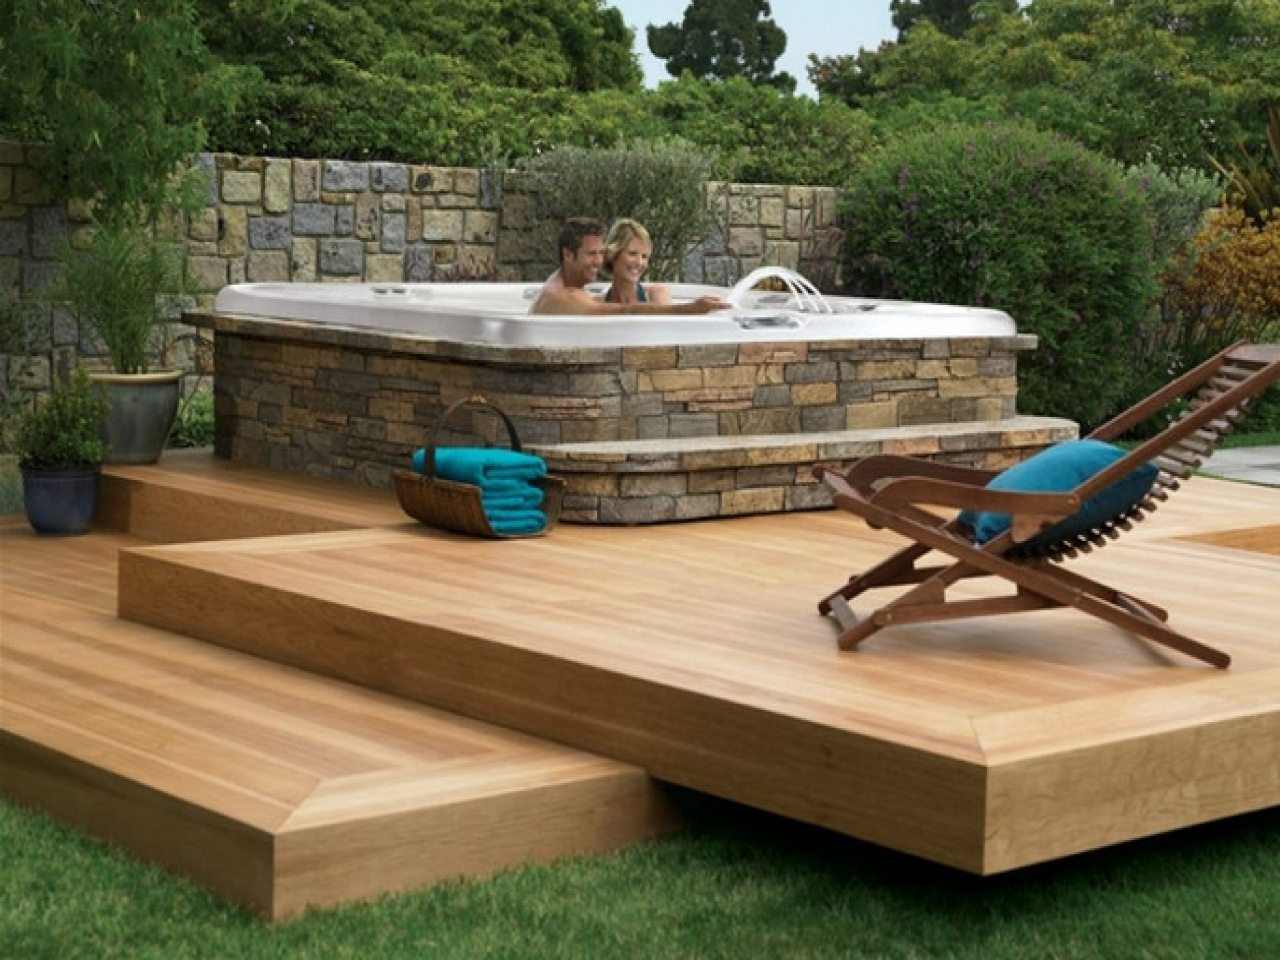 Bathtub Deck Ideas Back Yard With Hot Tub Deck Ideas Hot Tub Yard in 11 Some of the Coolest Designs of How to Makeover Hot Tub Backyard Ideas